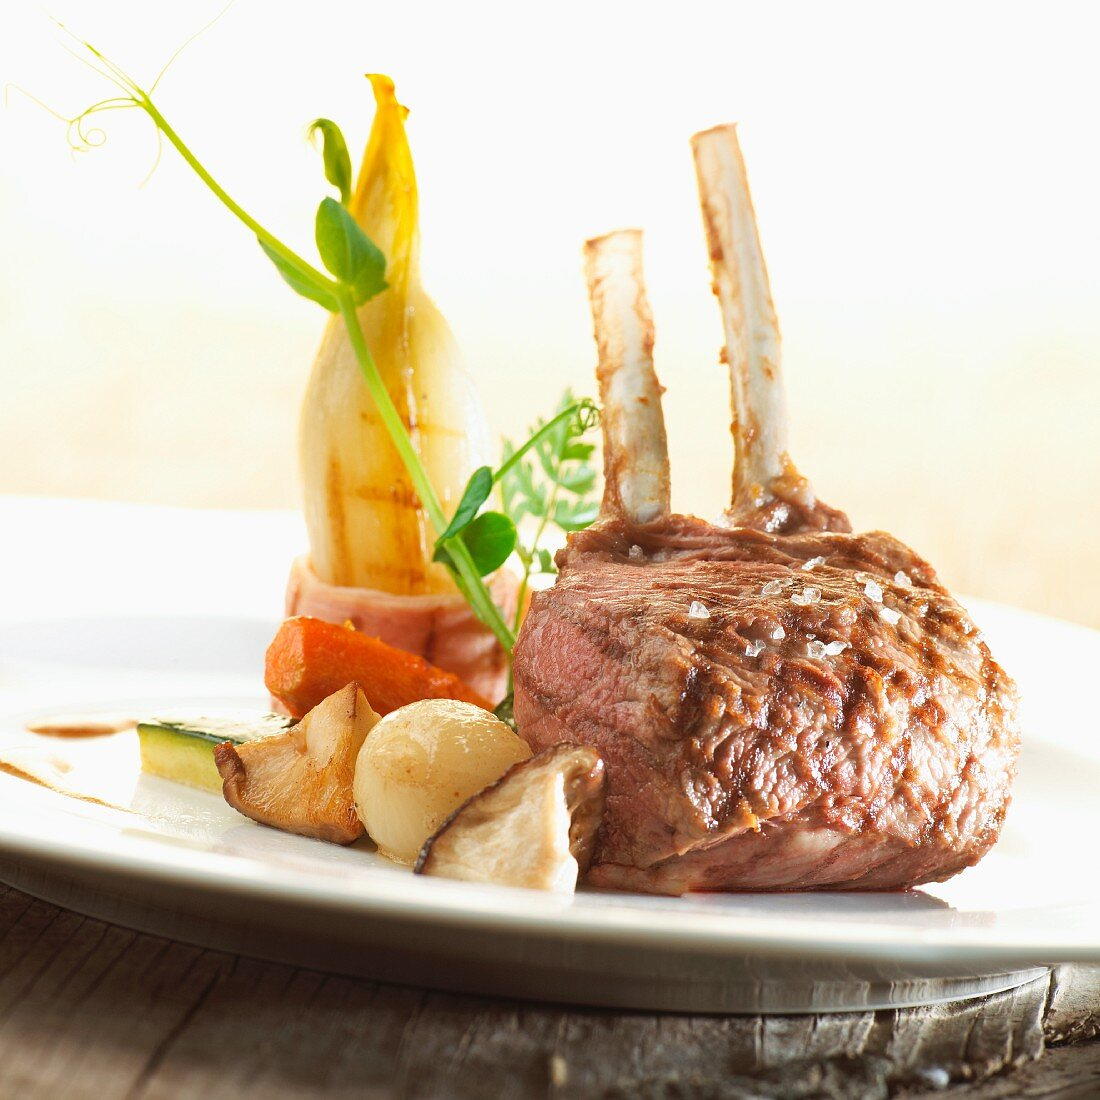 A lamb chop with herb butter and grilled chicory